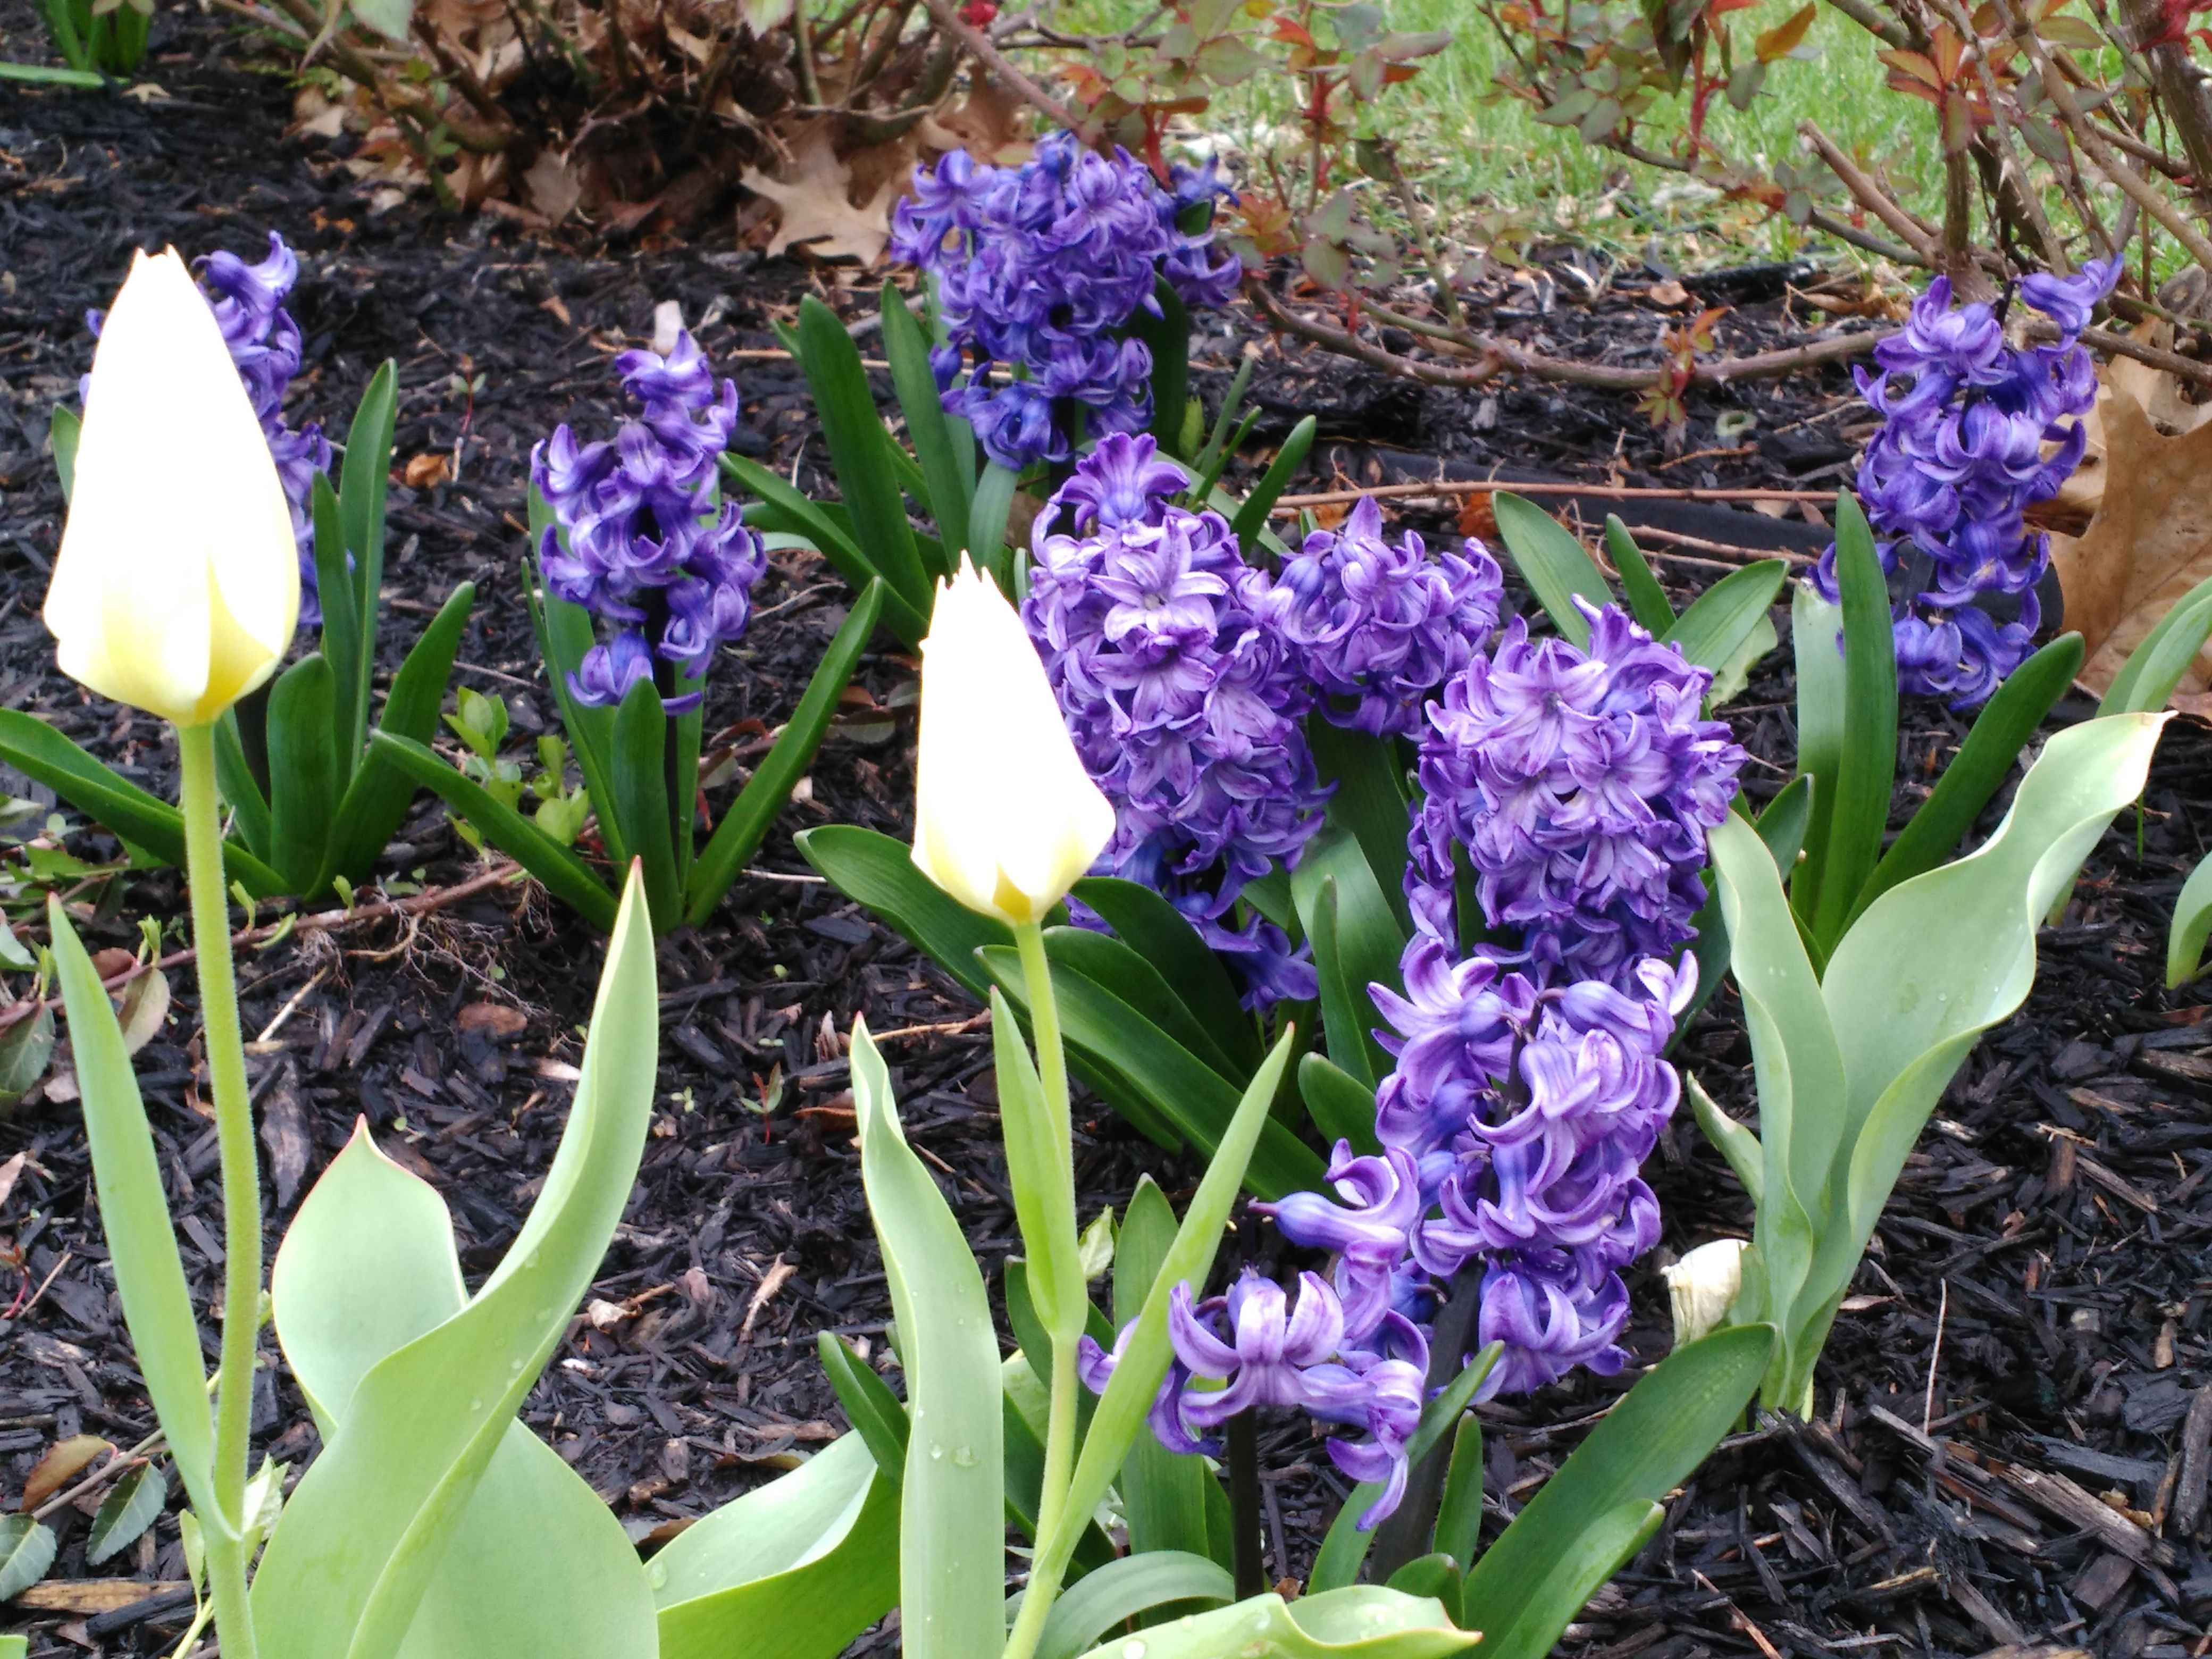 Tulip and Hyacinth create an amazing combination in the Spring, especially with purple and yellow color combination- one of the best! Learn more about how to design with color here: http://www.outdoorhomeandgarden.com/designing-with-plant-colors-garden-landscape/